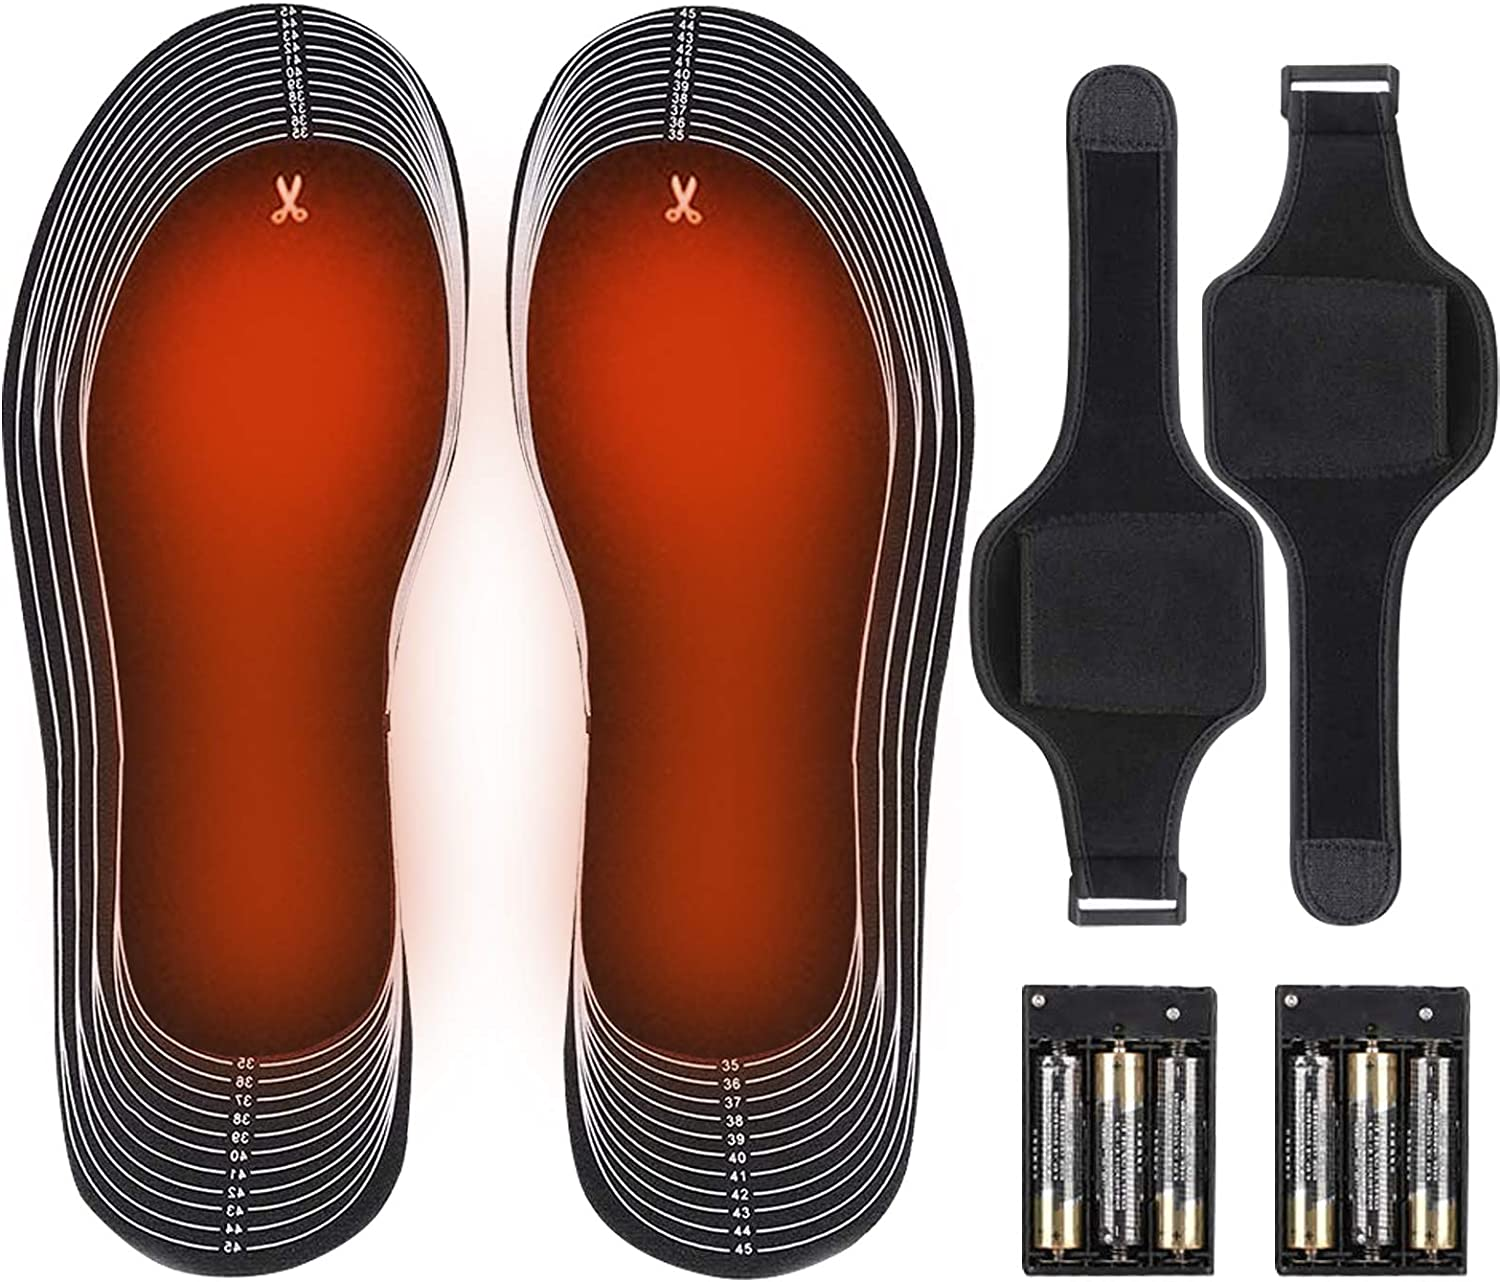 Eebuy Electric Heated Insole, Battery Operated Heated Shoe Inserts Winter Heated Insoles for Men and Women, Electric Heating Insoles for Outdoor Sports Hunting/Fishing/Shoveling Snow